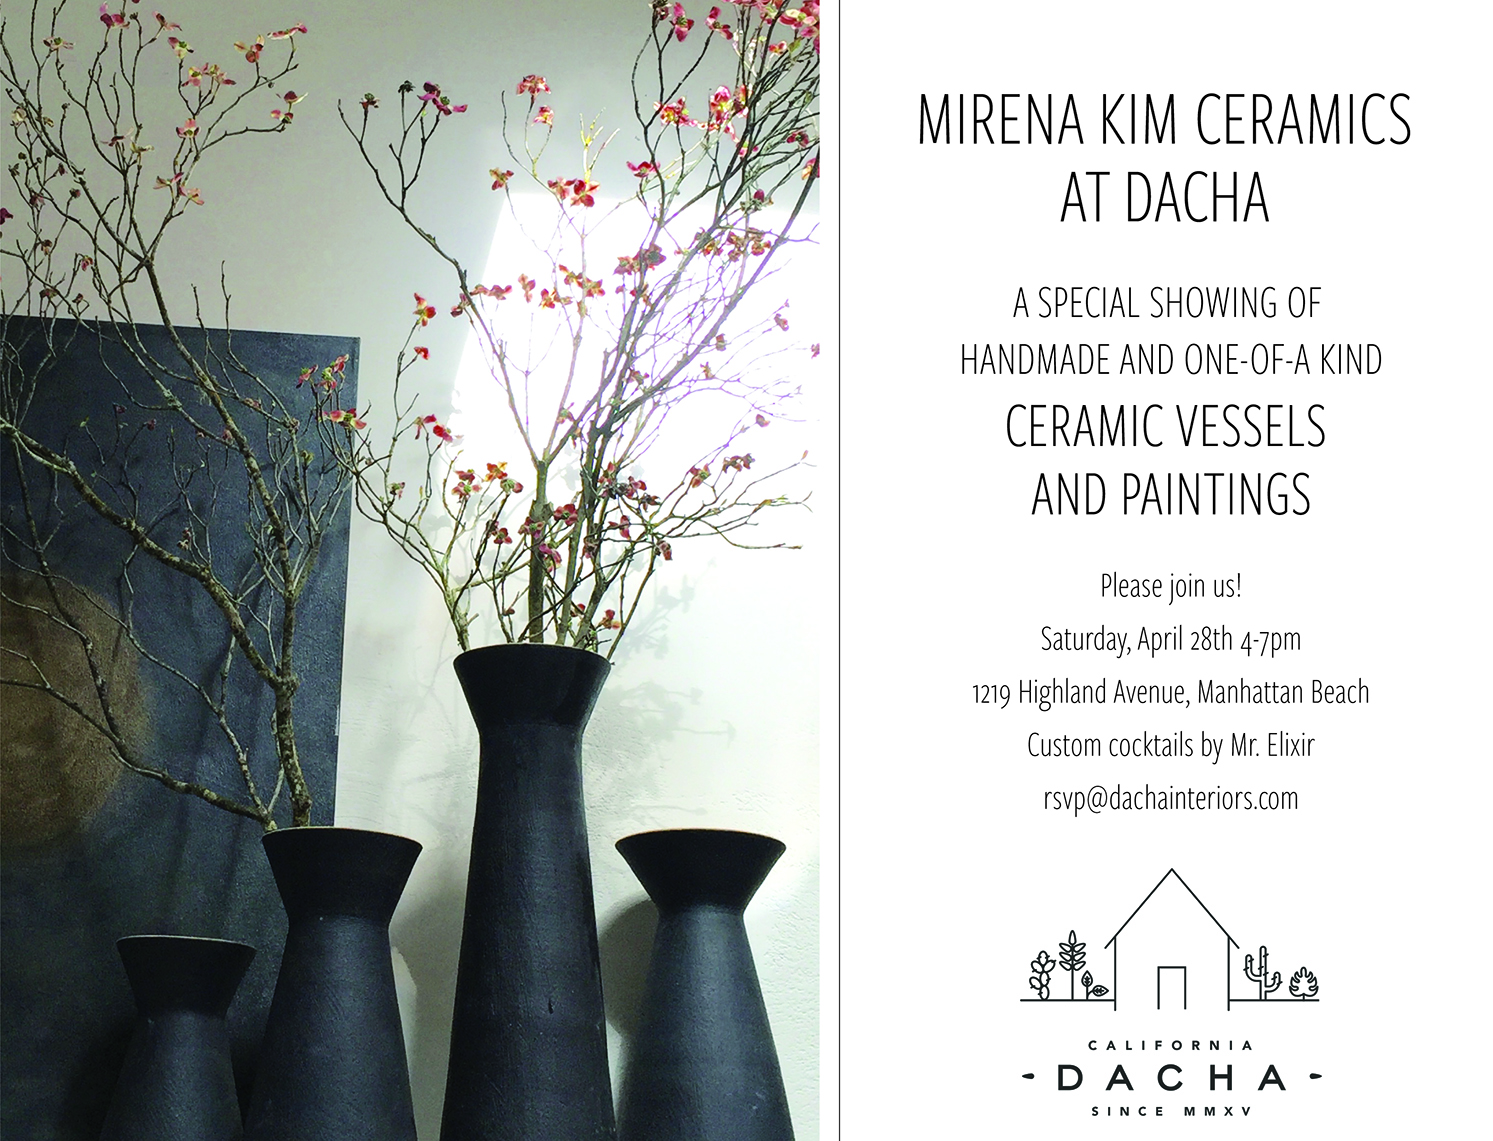 MIRENA KIM CERAMICS AT DACHA A SPECIAL SHOWING OFHANDMADE AND ONE-OF-A KIND CERAMIC VESSELS AND PAINTINGSPlease join us!Saturday, April 28th 4-7pm1219 Highland Avenue, Manhattan Beach Custom cocktails by Mr. Elixirrsvp@dachainteriors.com  -